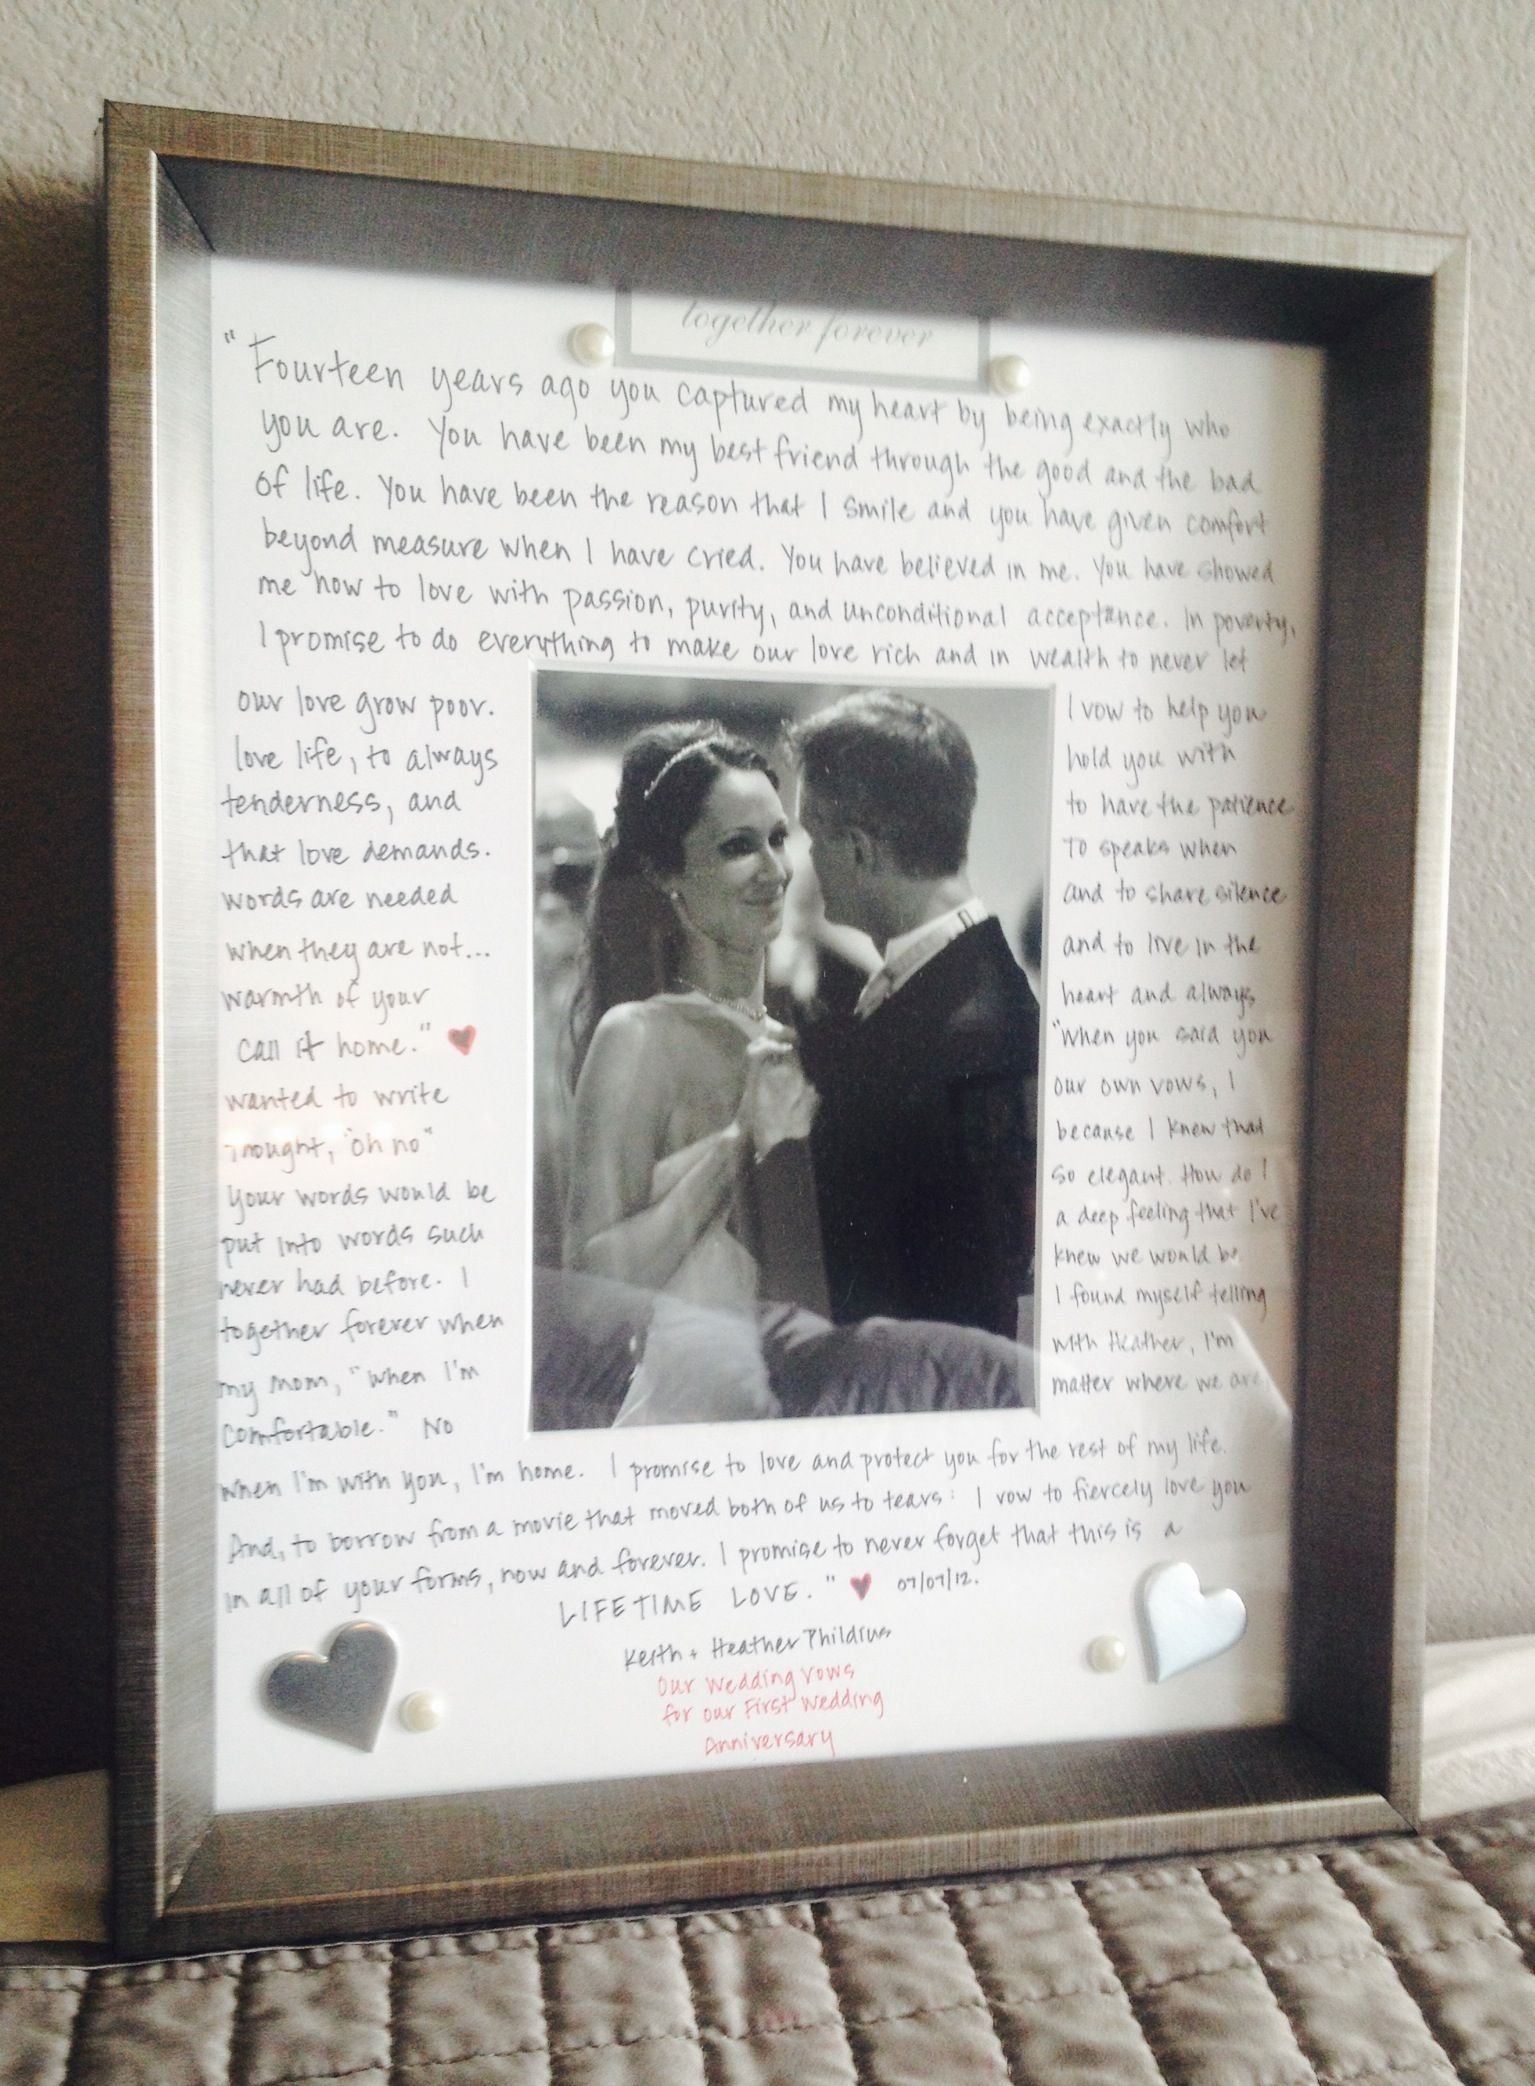 10 Perfect 10 Year Anniversary Gift Ideas For Husband first wedding anniversary gift to my husband our vows written out 5 2020